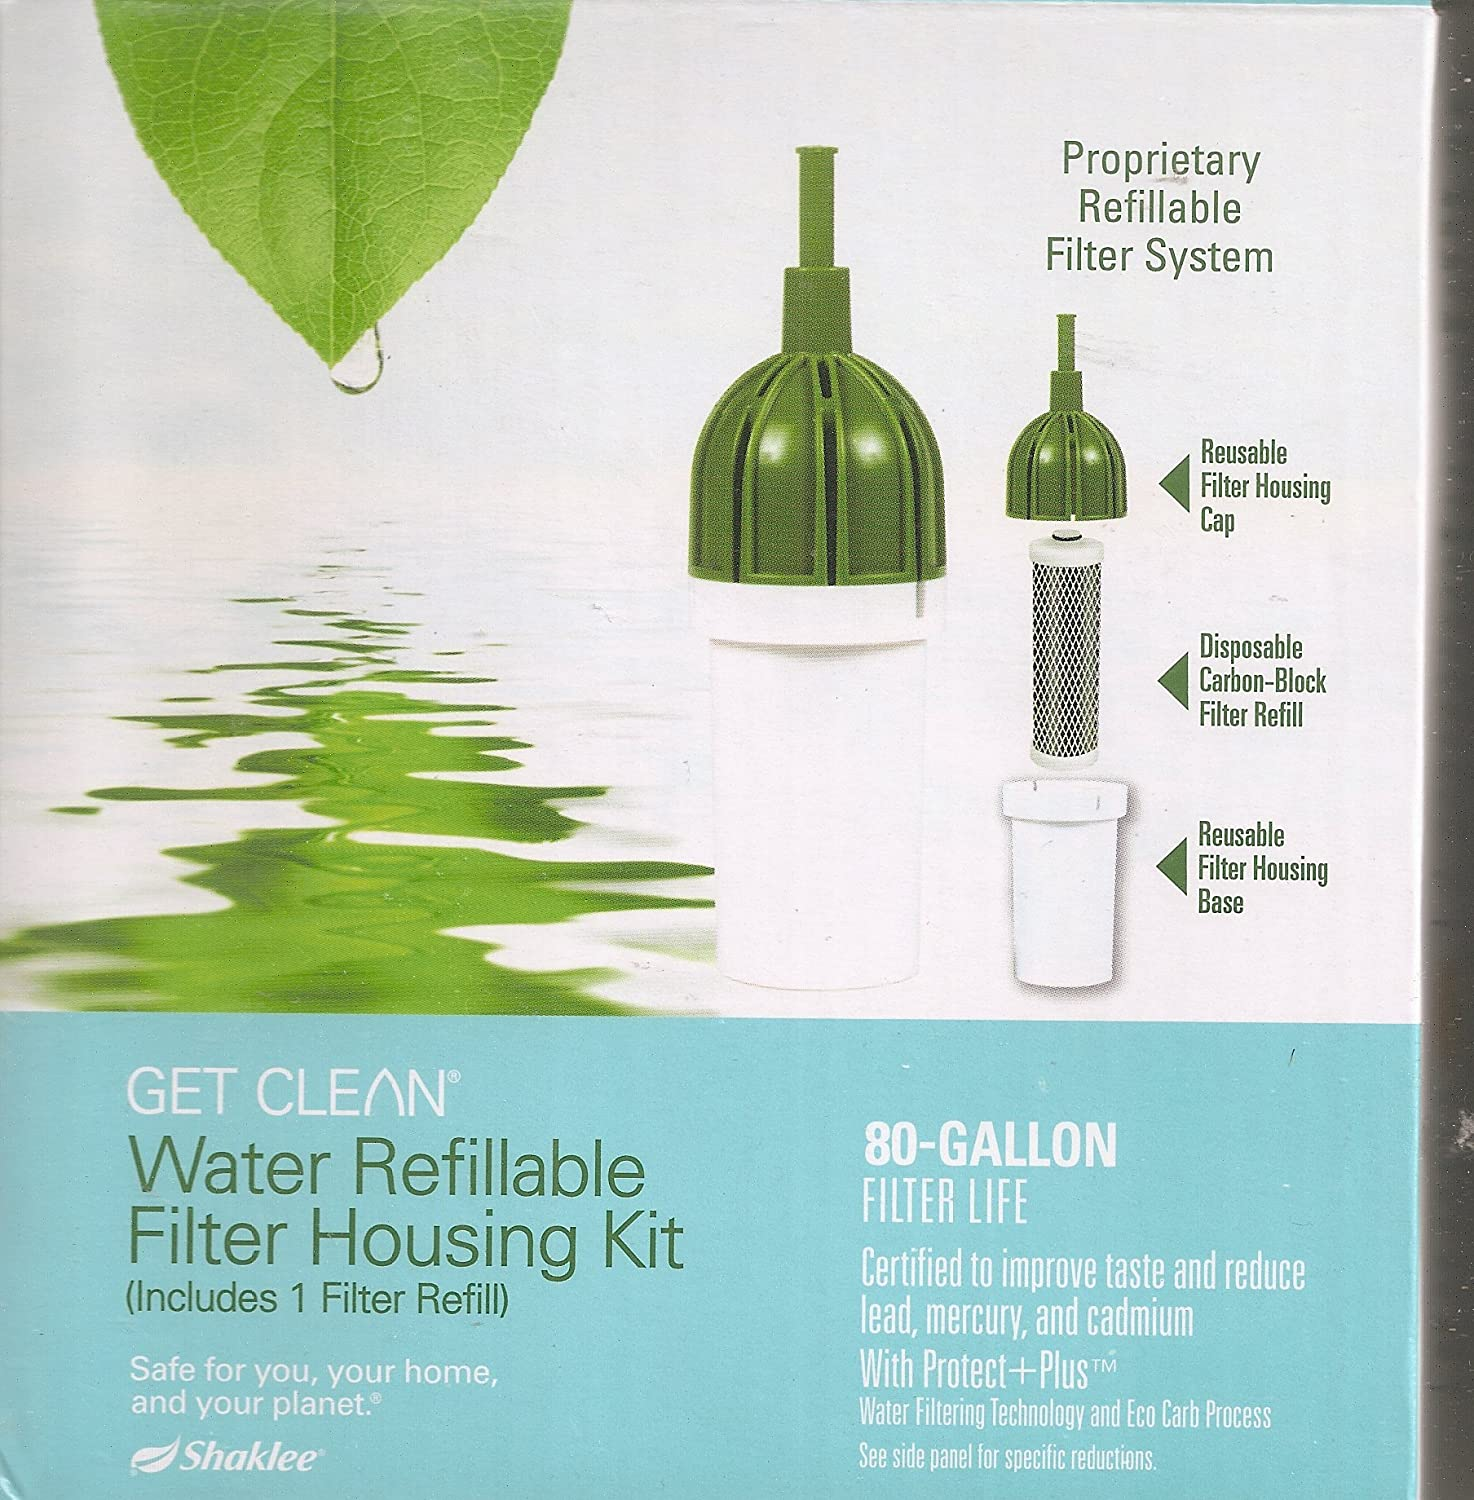 Amazon.com: Shaklee Get Clean Water Refillable Filter Housing Kit ...